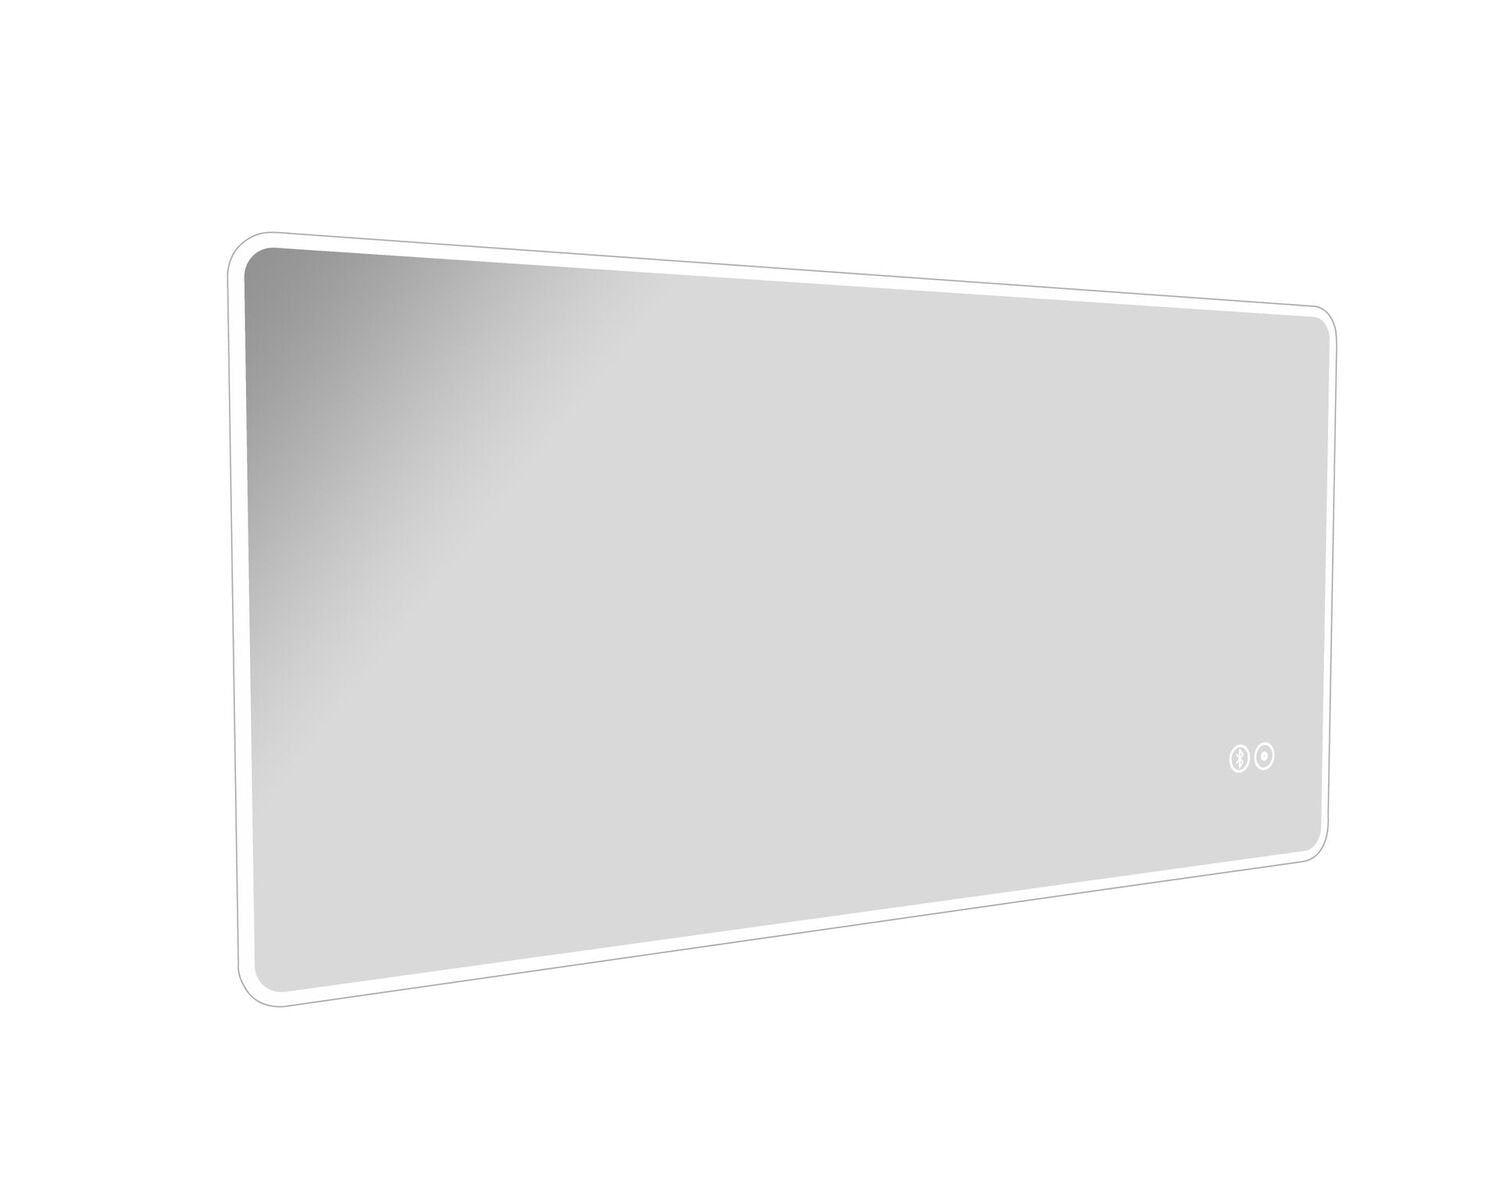 Cassellie LED Mirror with Touch Sensor, Demister & Bluetooth - 1200 x 600mm